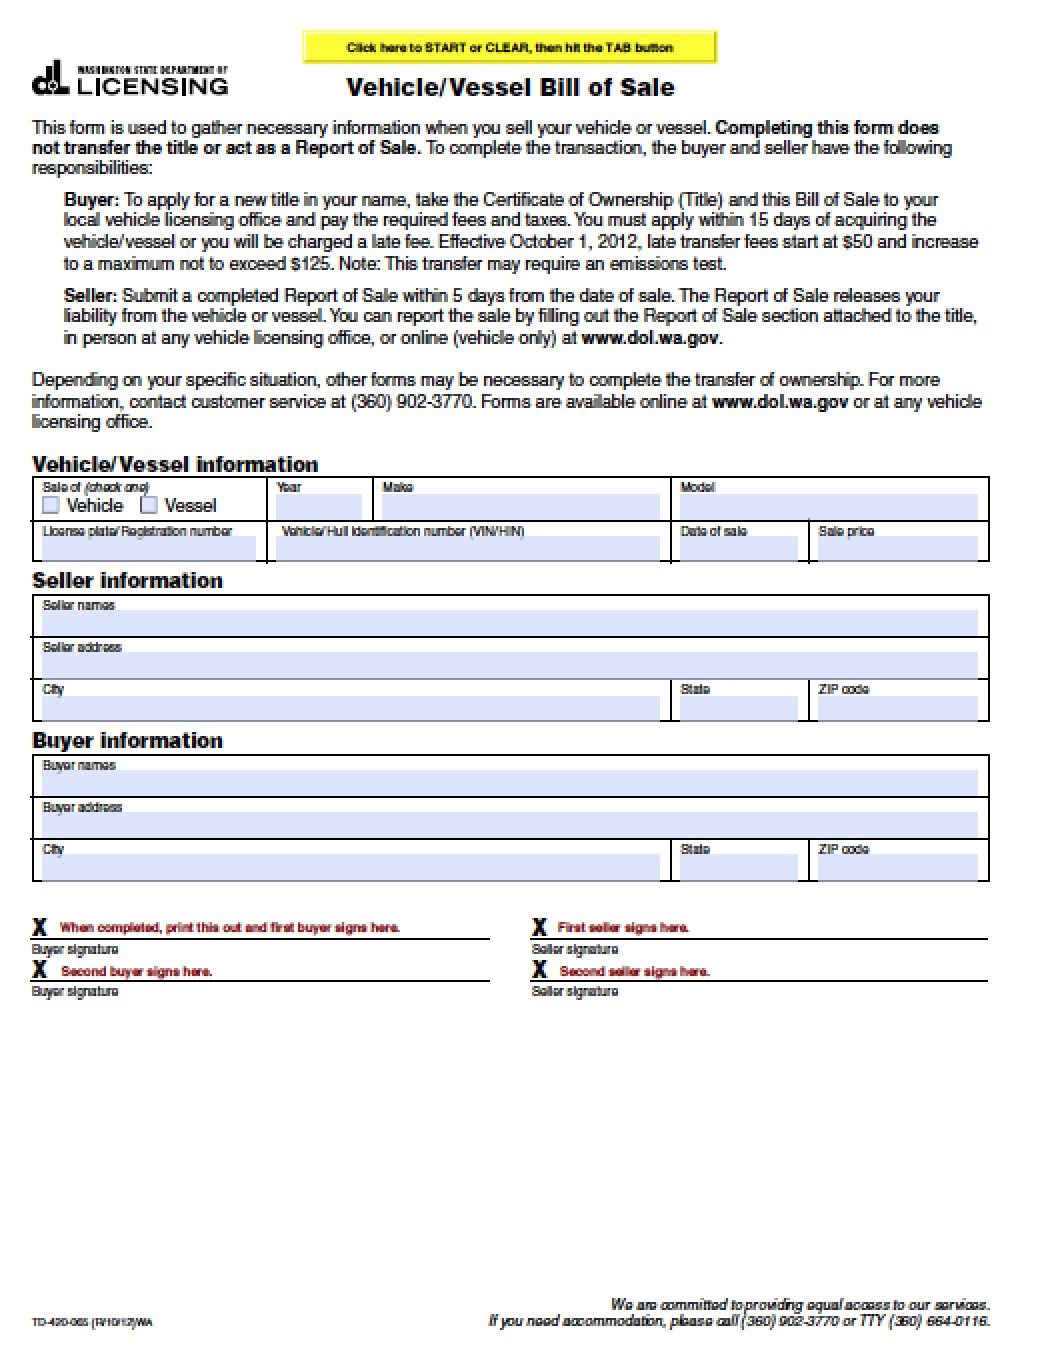 bill of sale washington Free Washington Vehicle/Vessel Bill of Sale Form | PDF | Word (.doc)